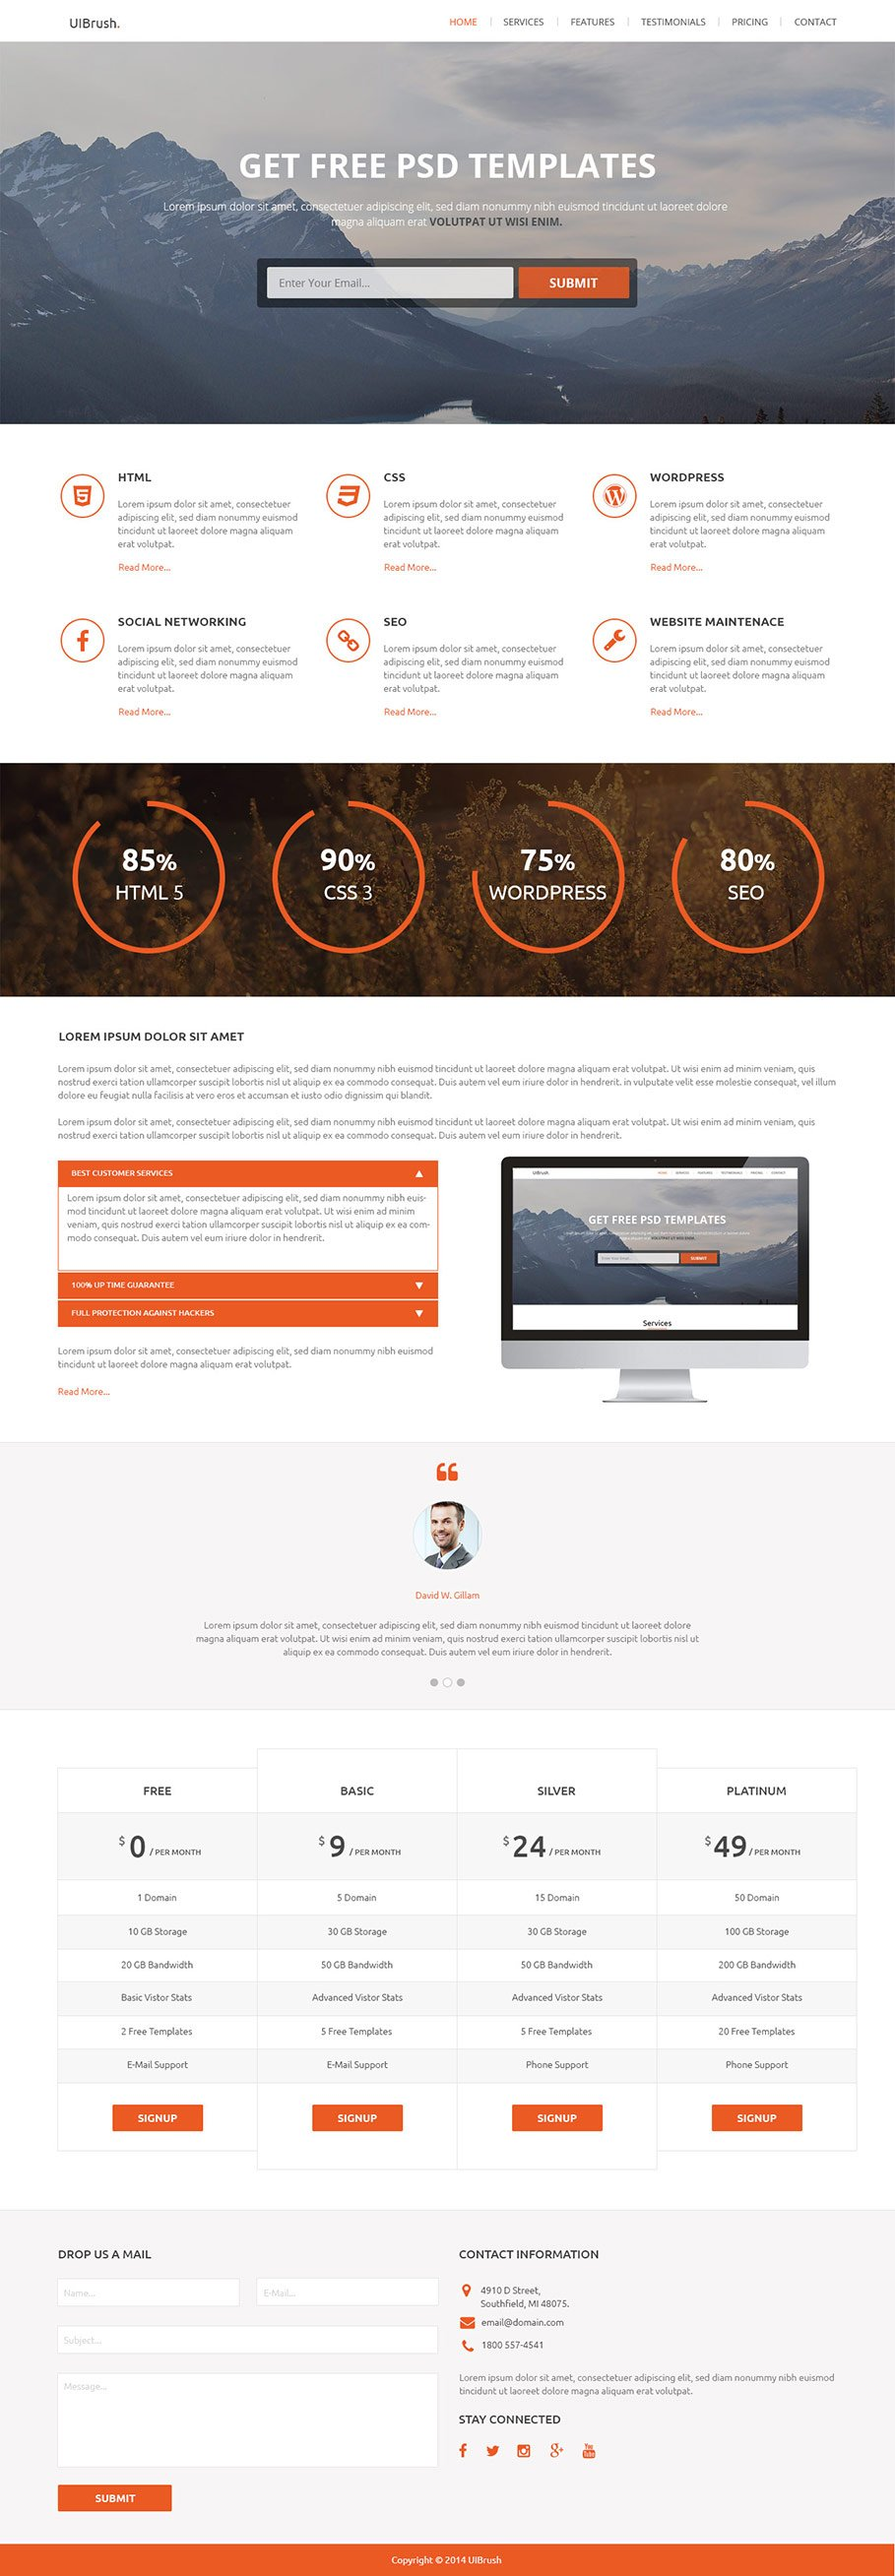 Free UIBrush One Page Template PSD